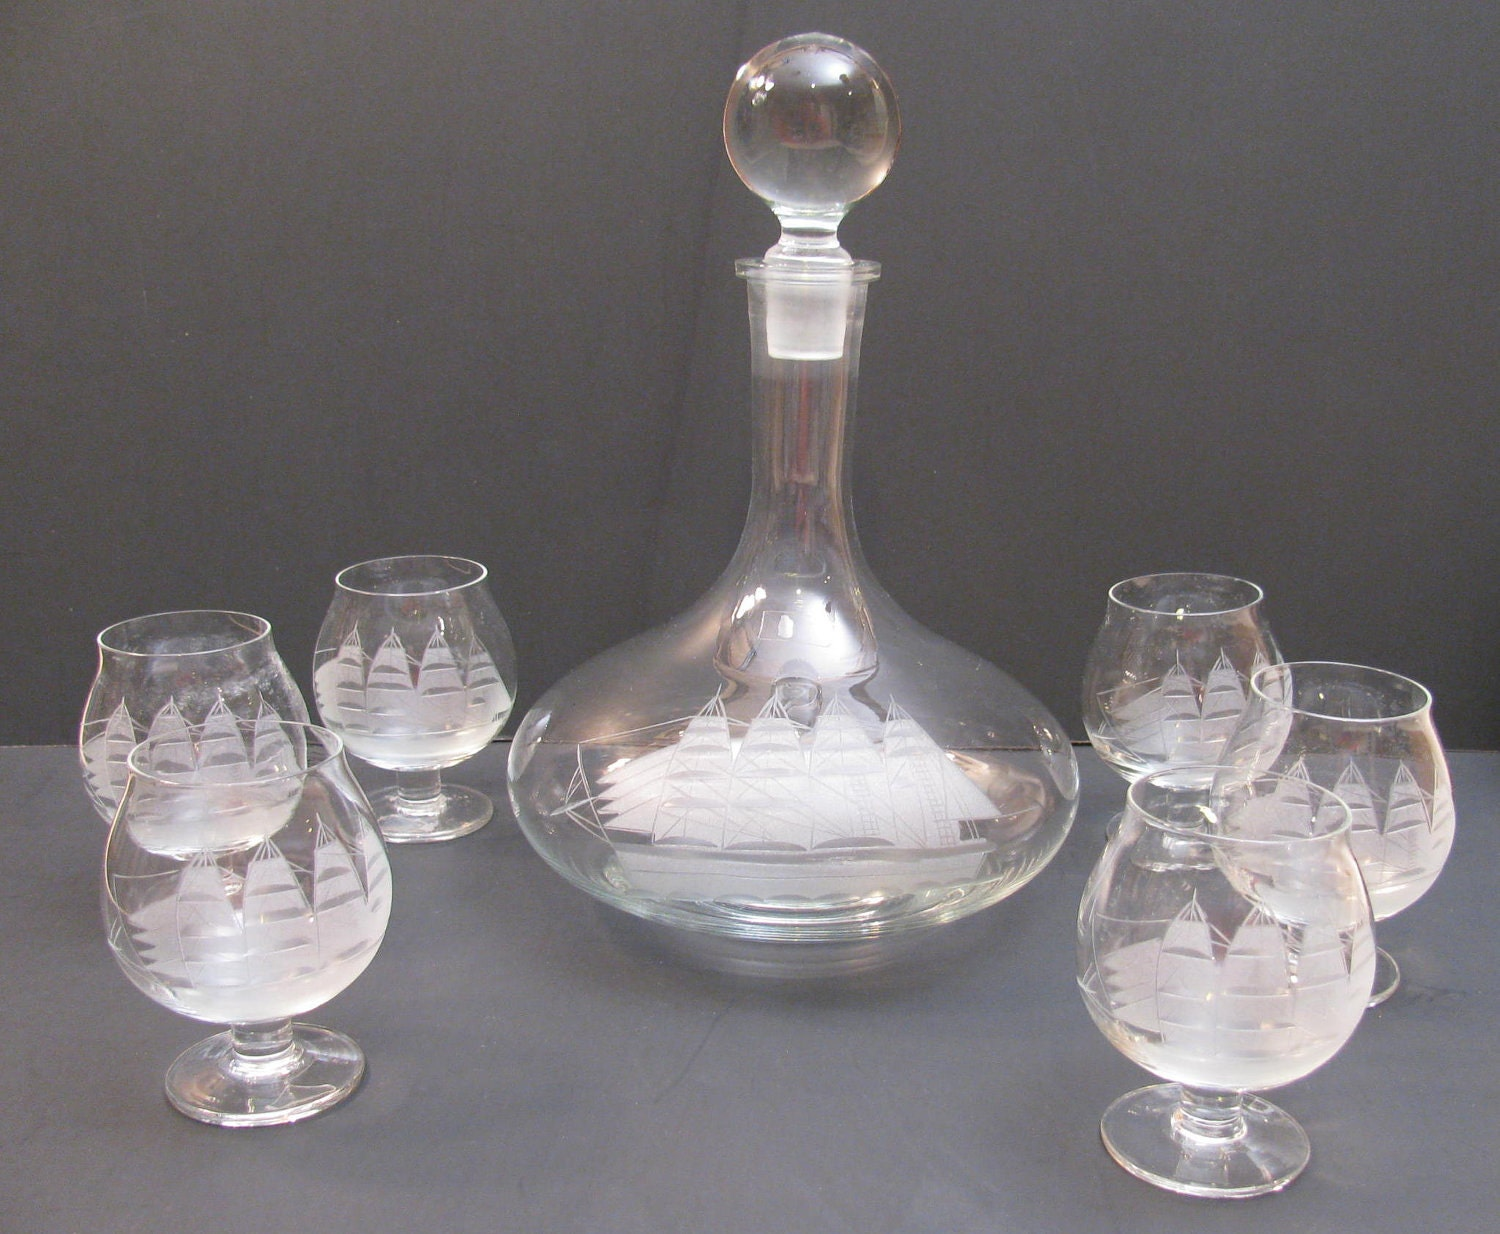 Etched Brandy Glasses